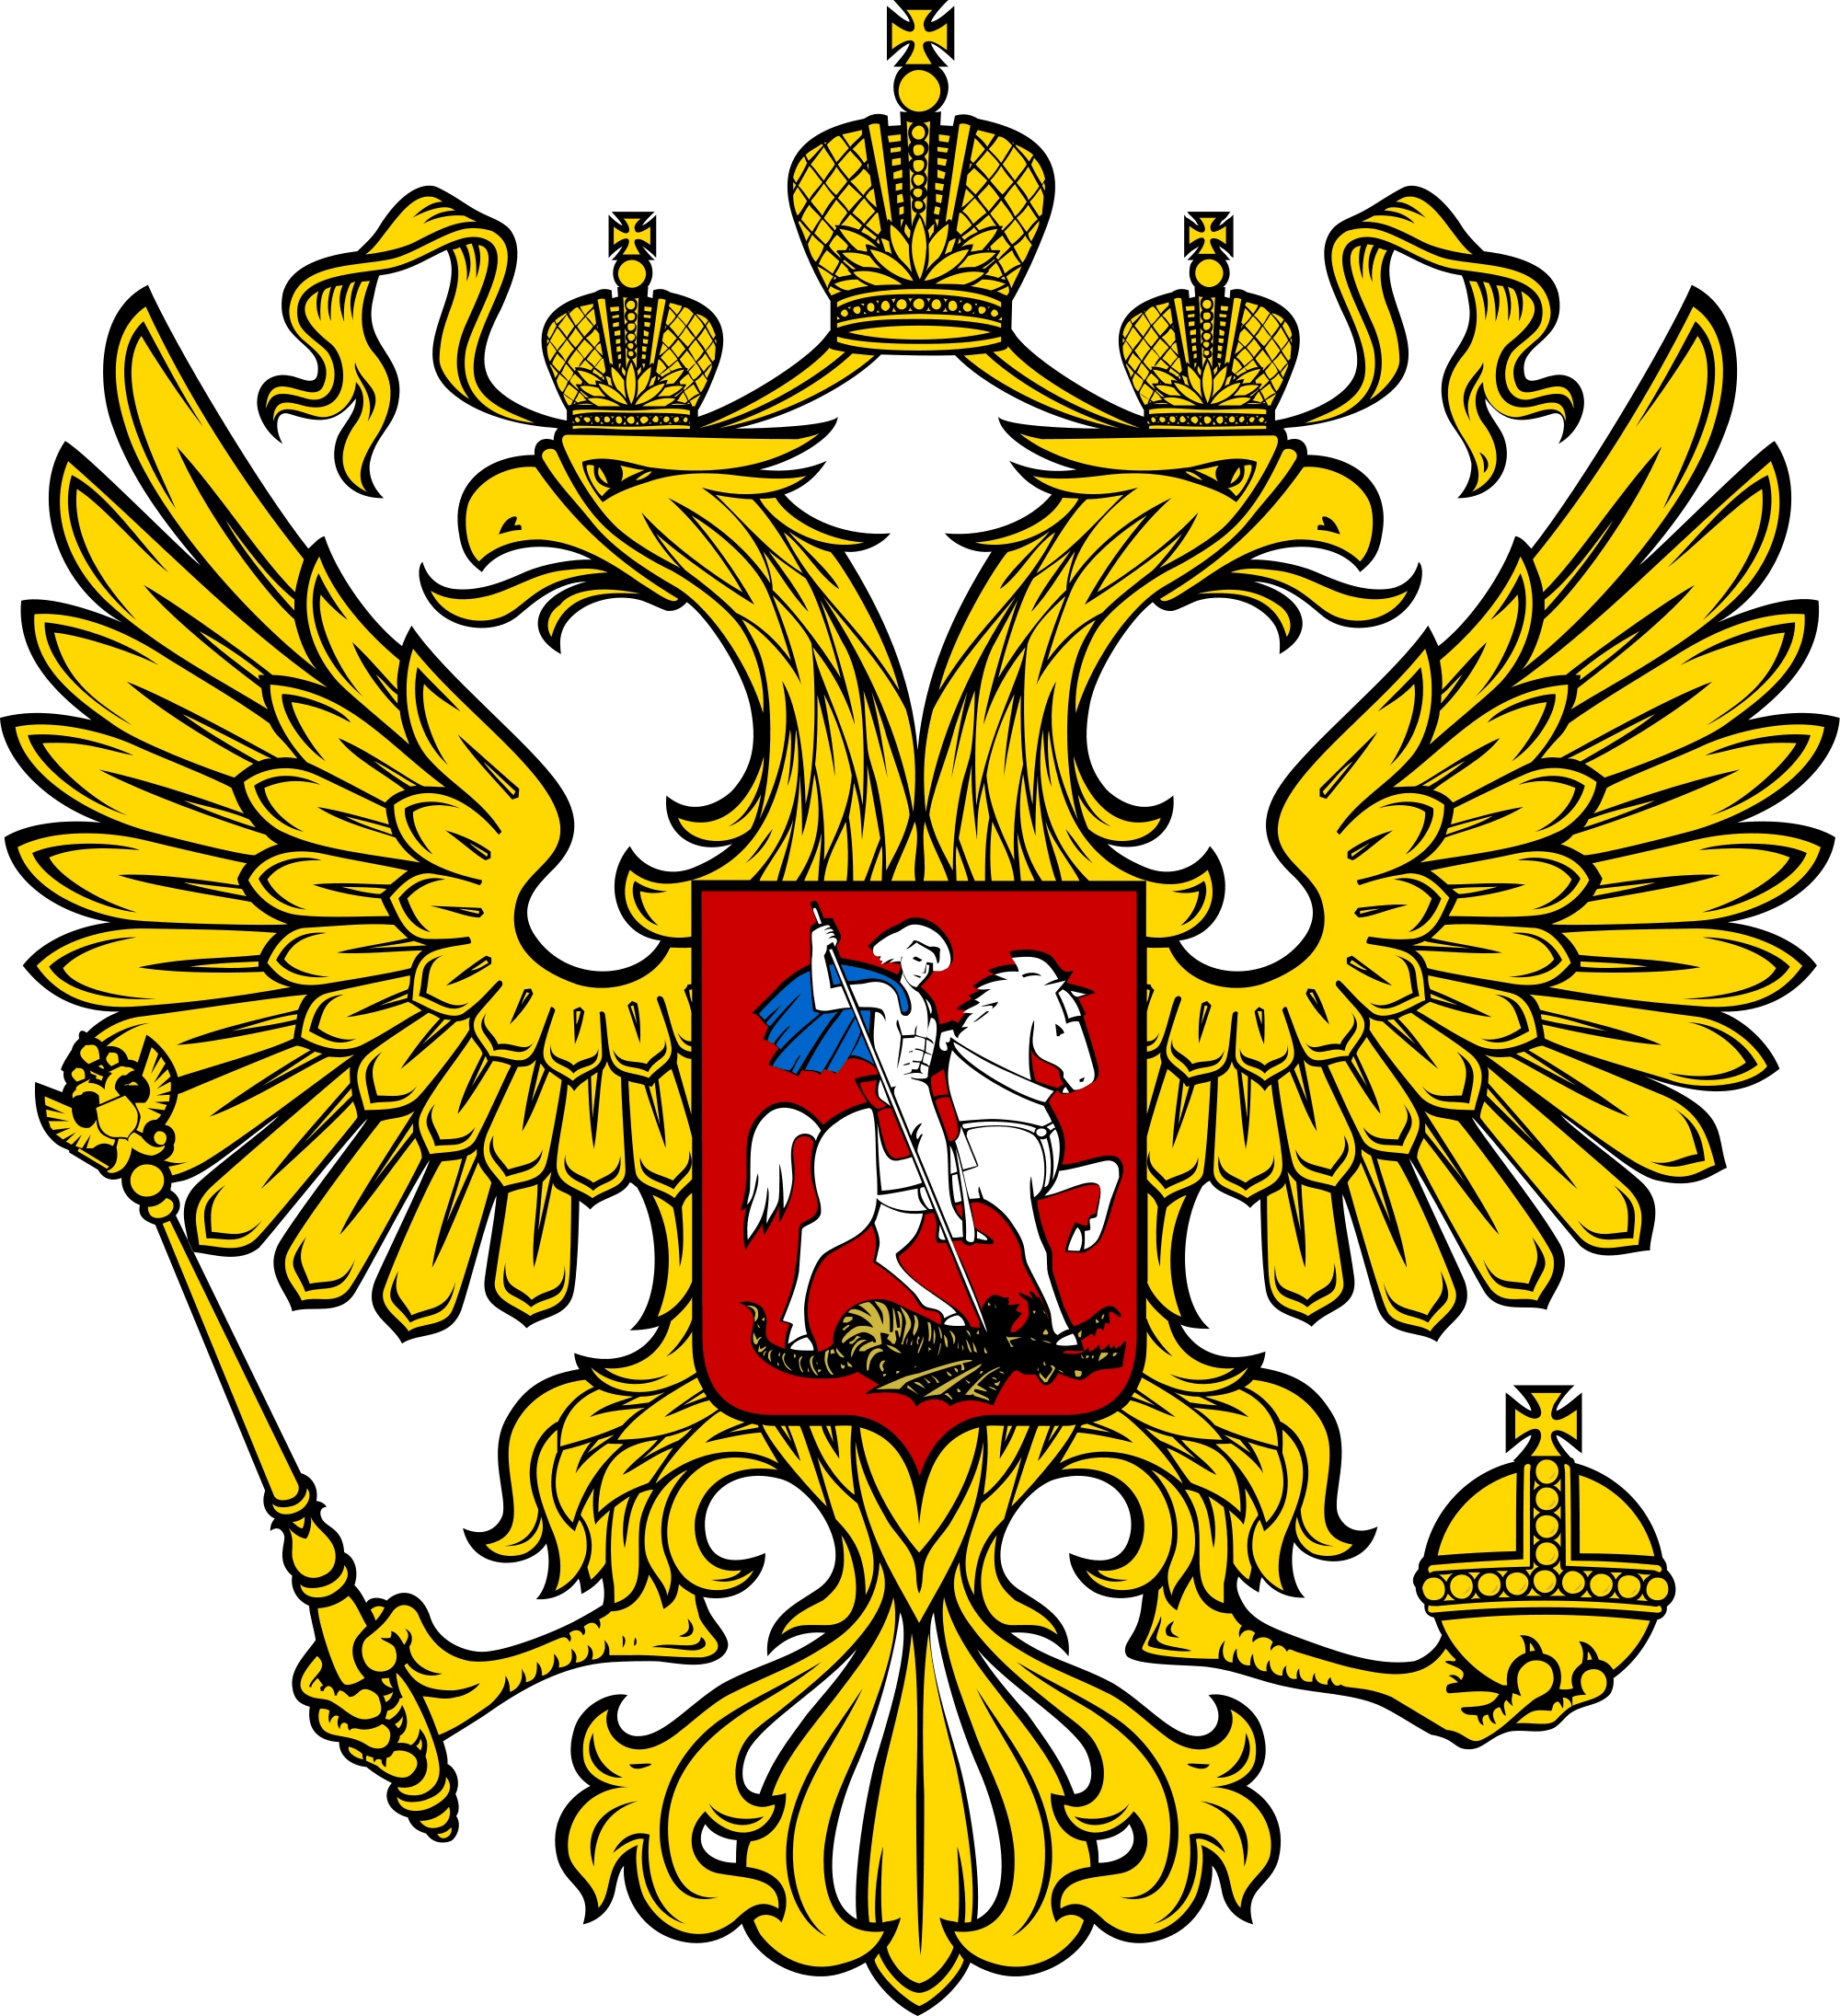 https://i2.wp.com/img3.wikia.nocookie.net/__cb20121108213507/worlduniverse/images/d/d5/Coat_of_Arms_of_Russian_Federation.png